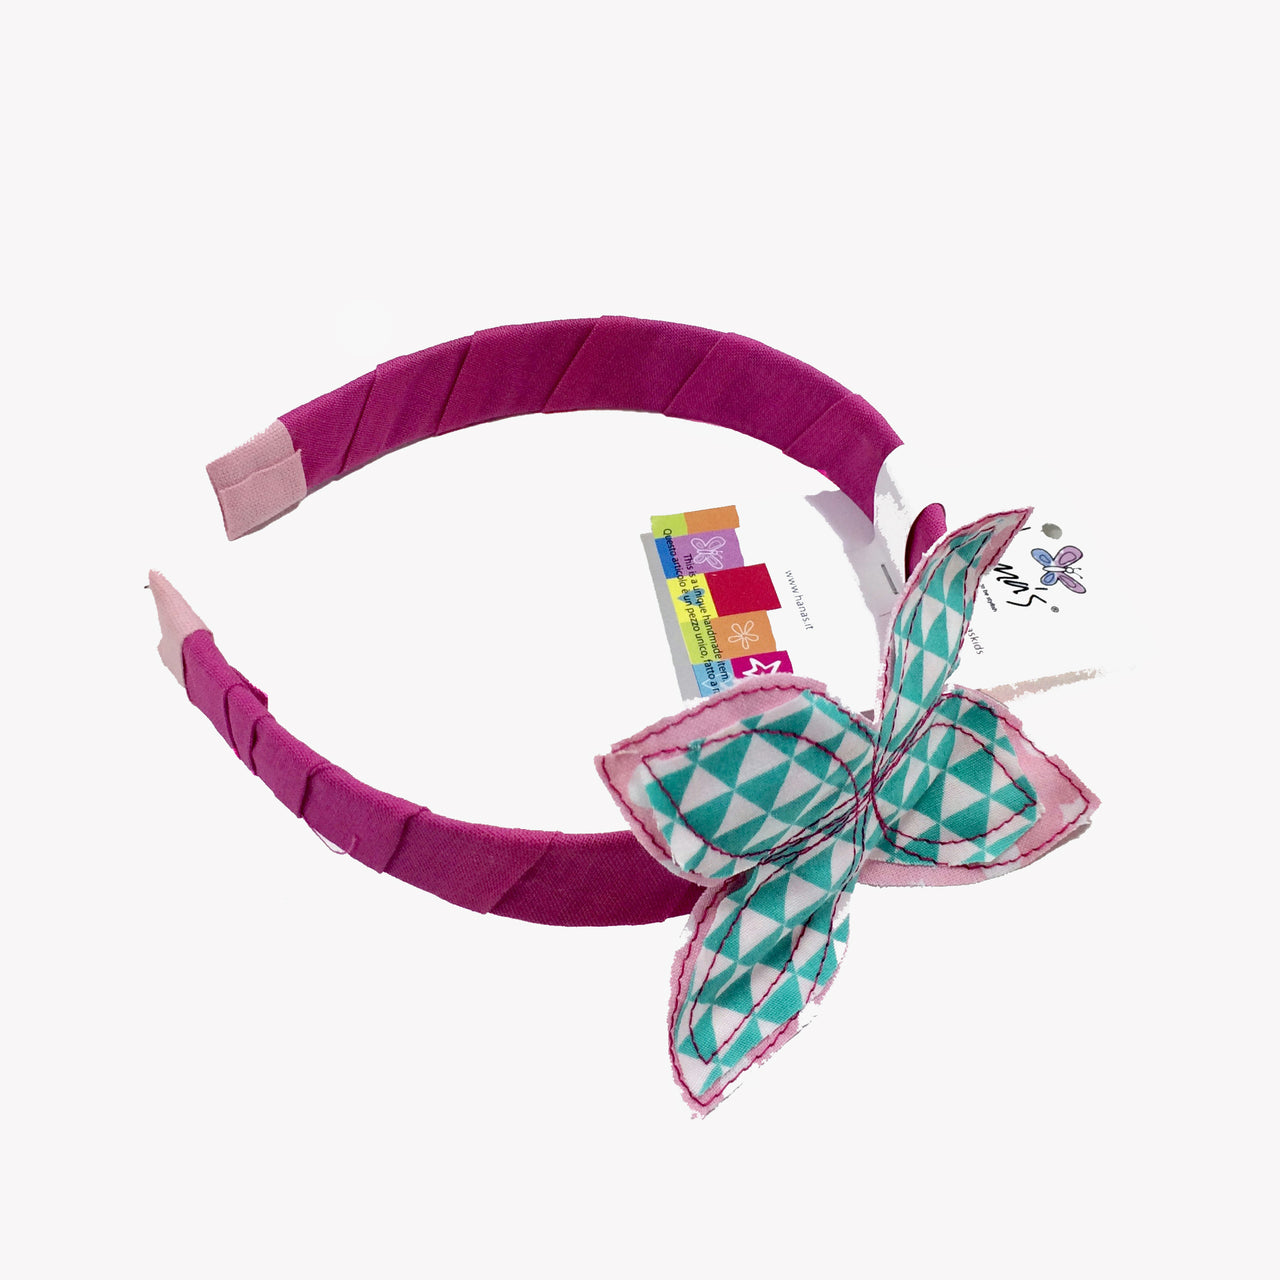 Fuchsia Butterfly Headband - Kids Room Decor | Toys Gifts | Childrens Interiors | Rooms for Rascals